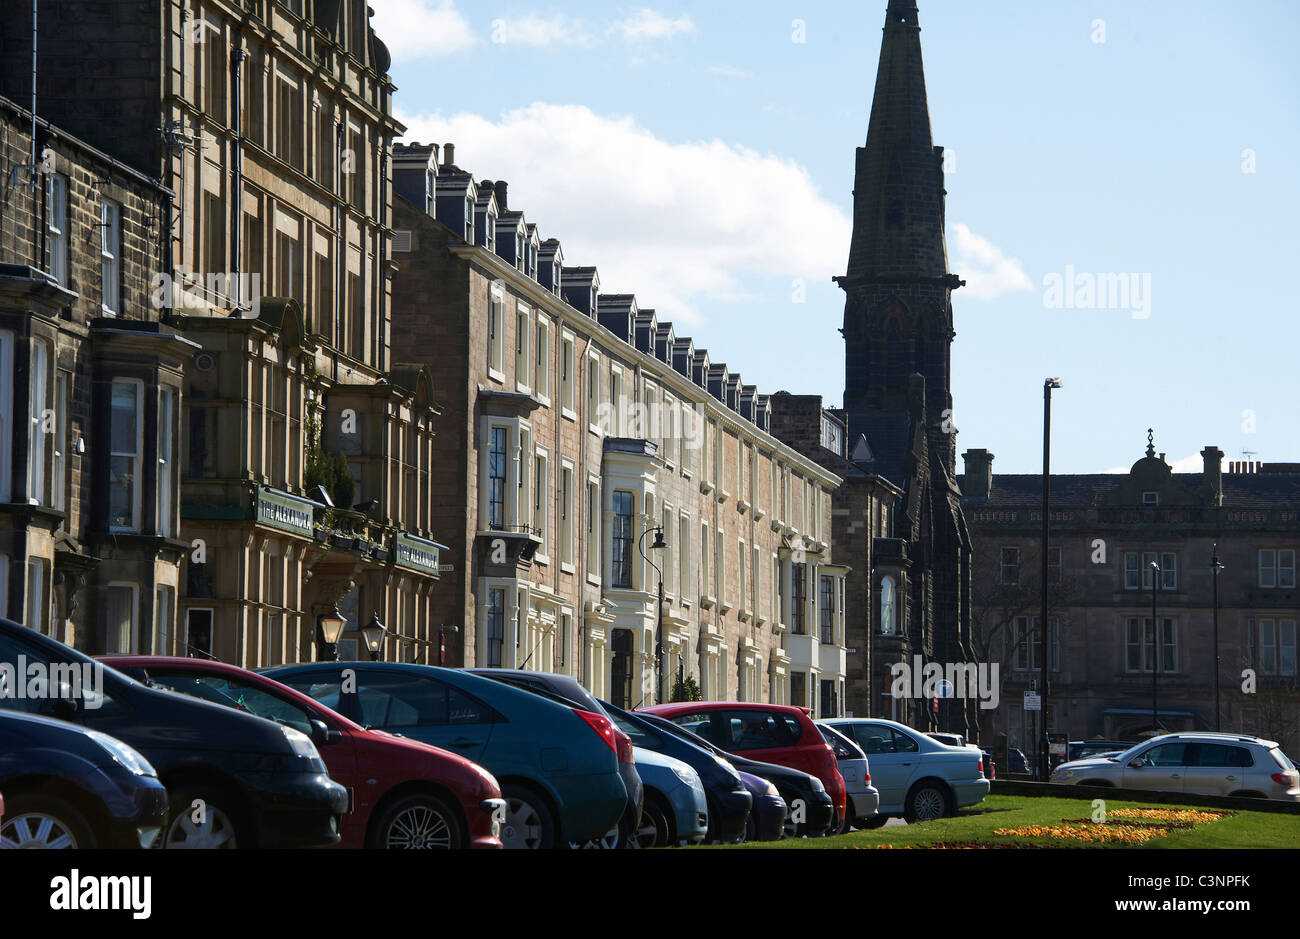 Yorkshire Terrace: Harrogate North Yorkshire England Victorian Stock Photos